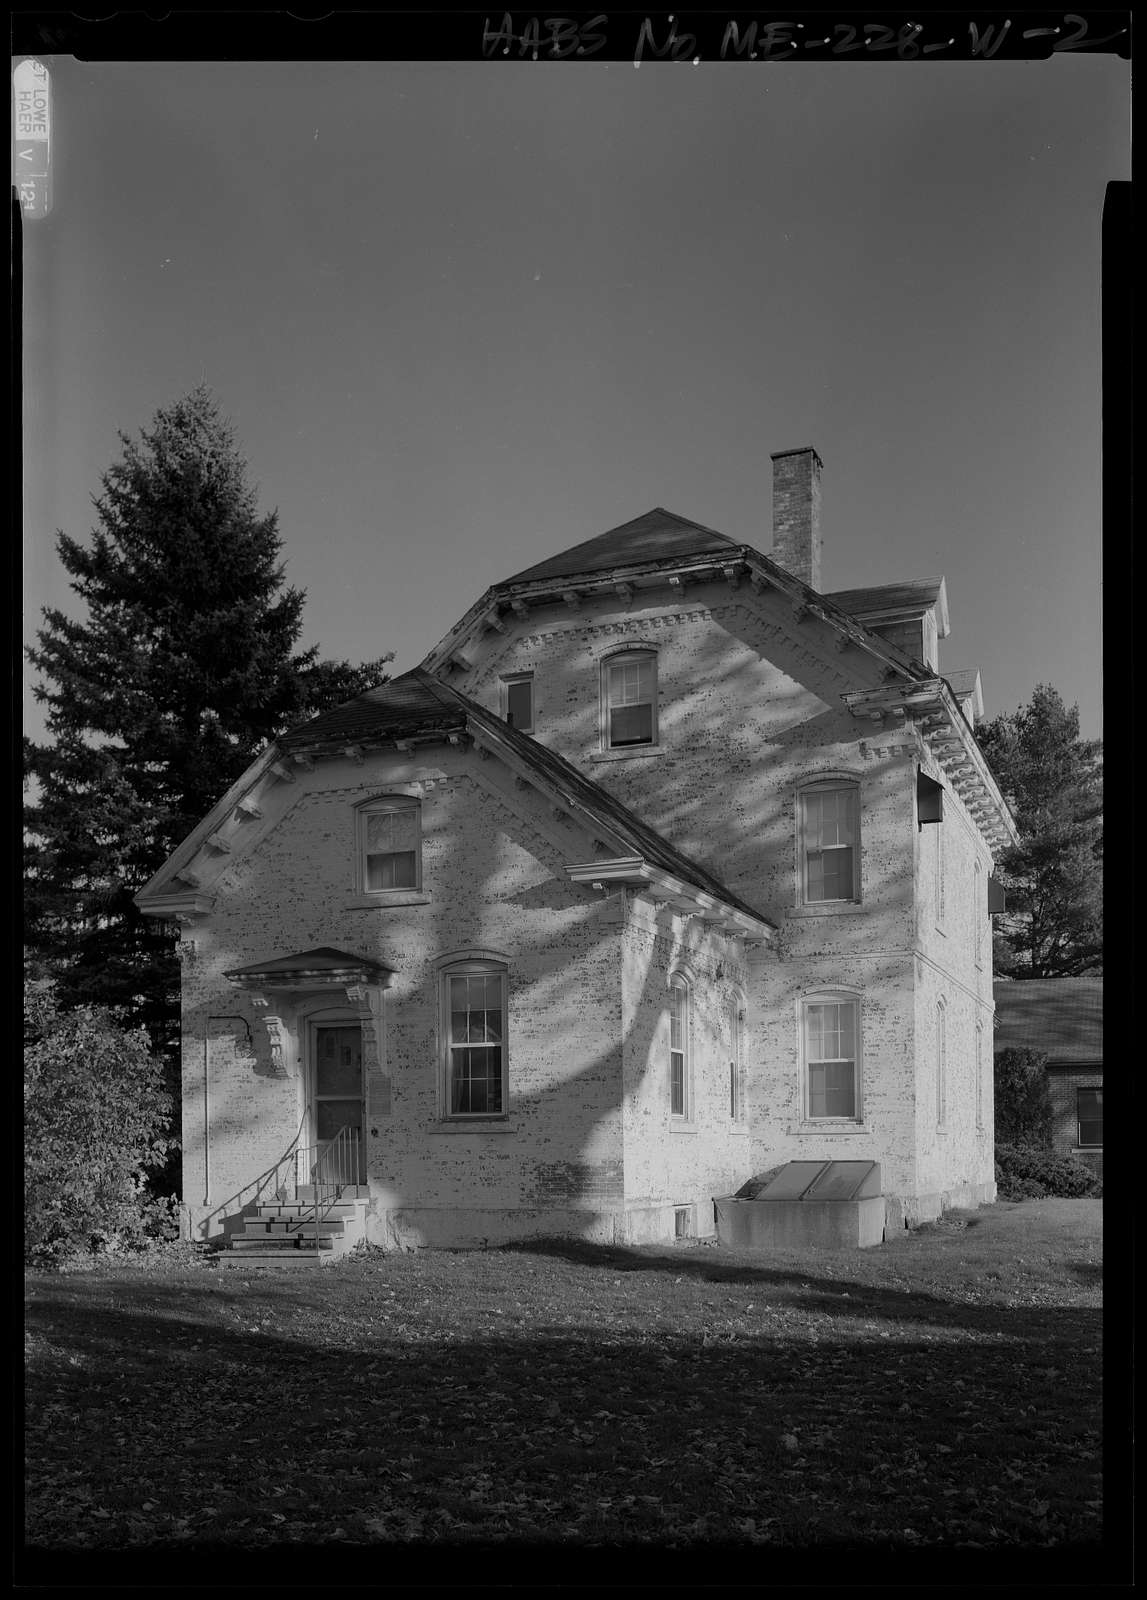 National Home for Disabled Volunteer Soldiers, Eastern Branch, Quartermaster Quarters, 1 VA Center, Augusta, Kennebec County, ME